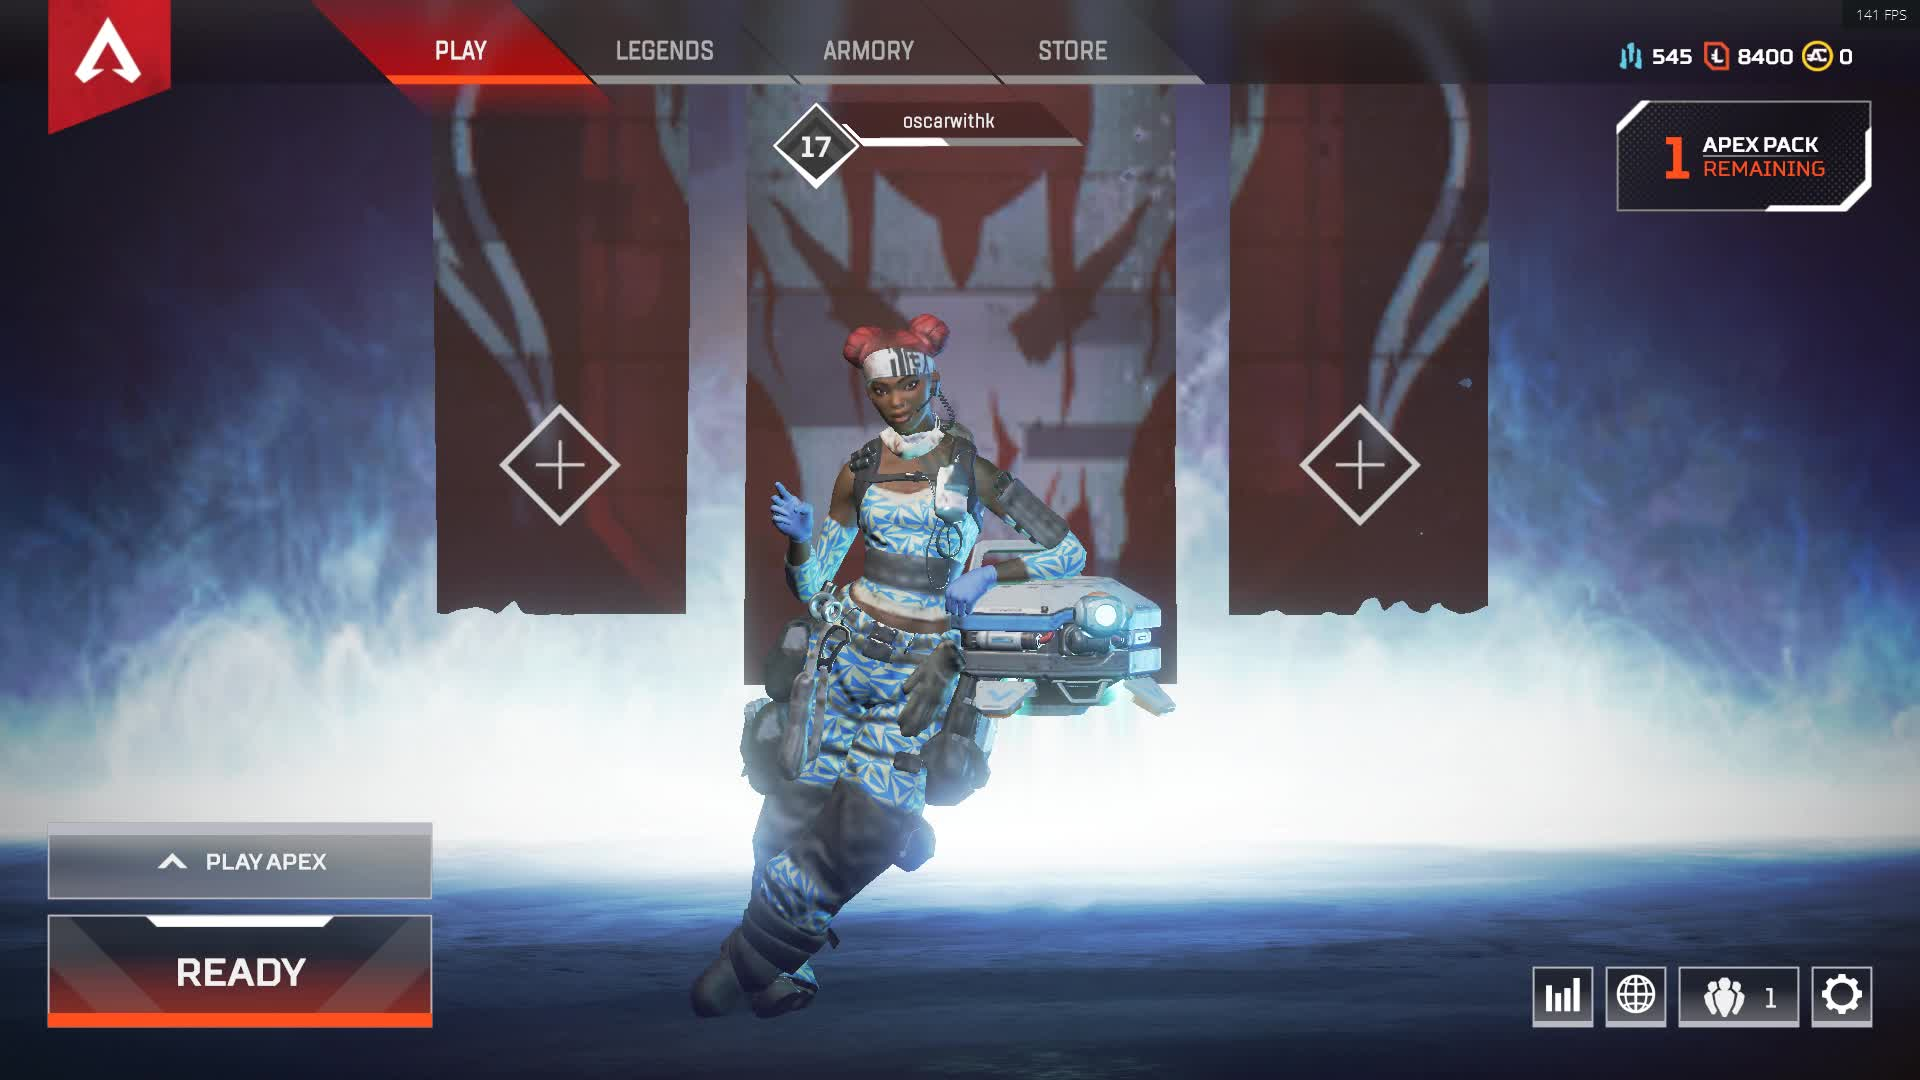 apex legends, apexlegends, gaming, Apex Legends GIFs